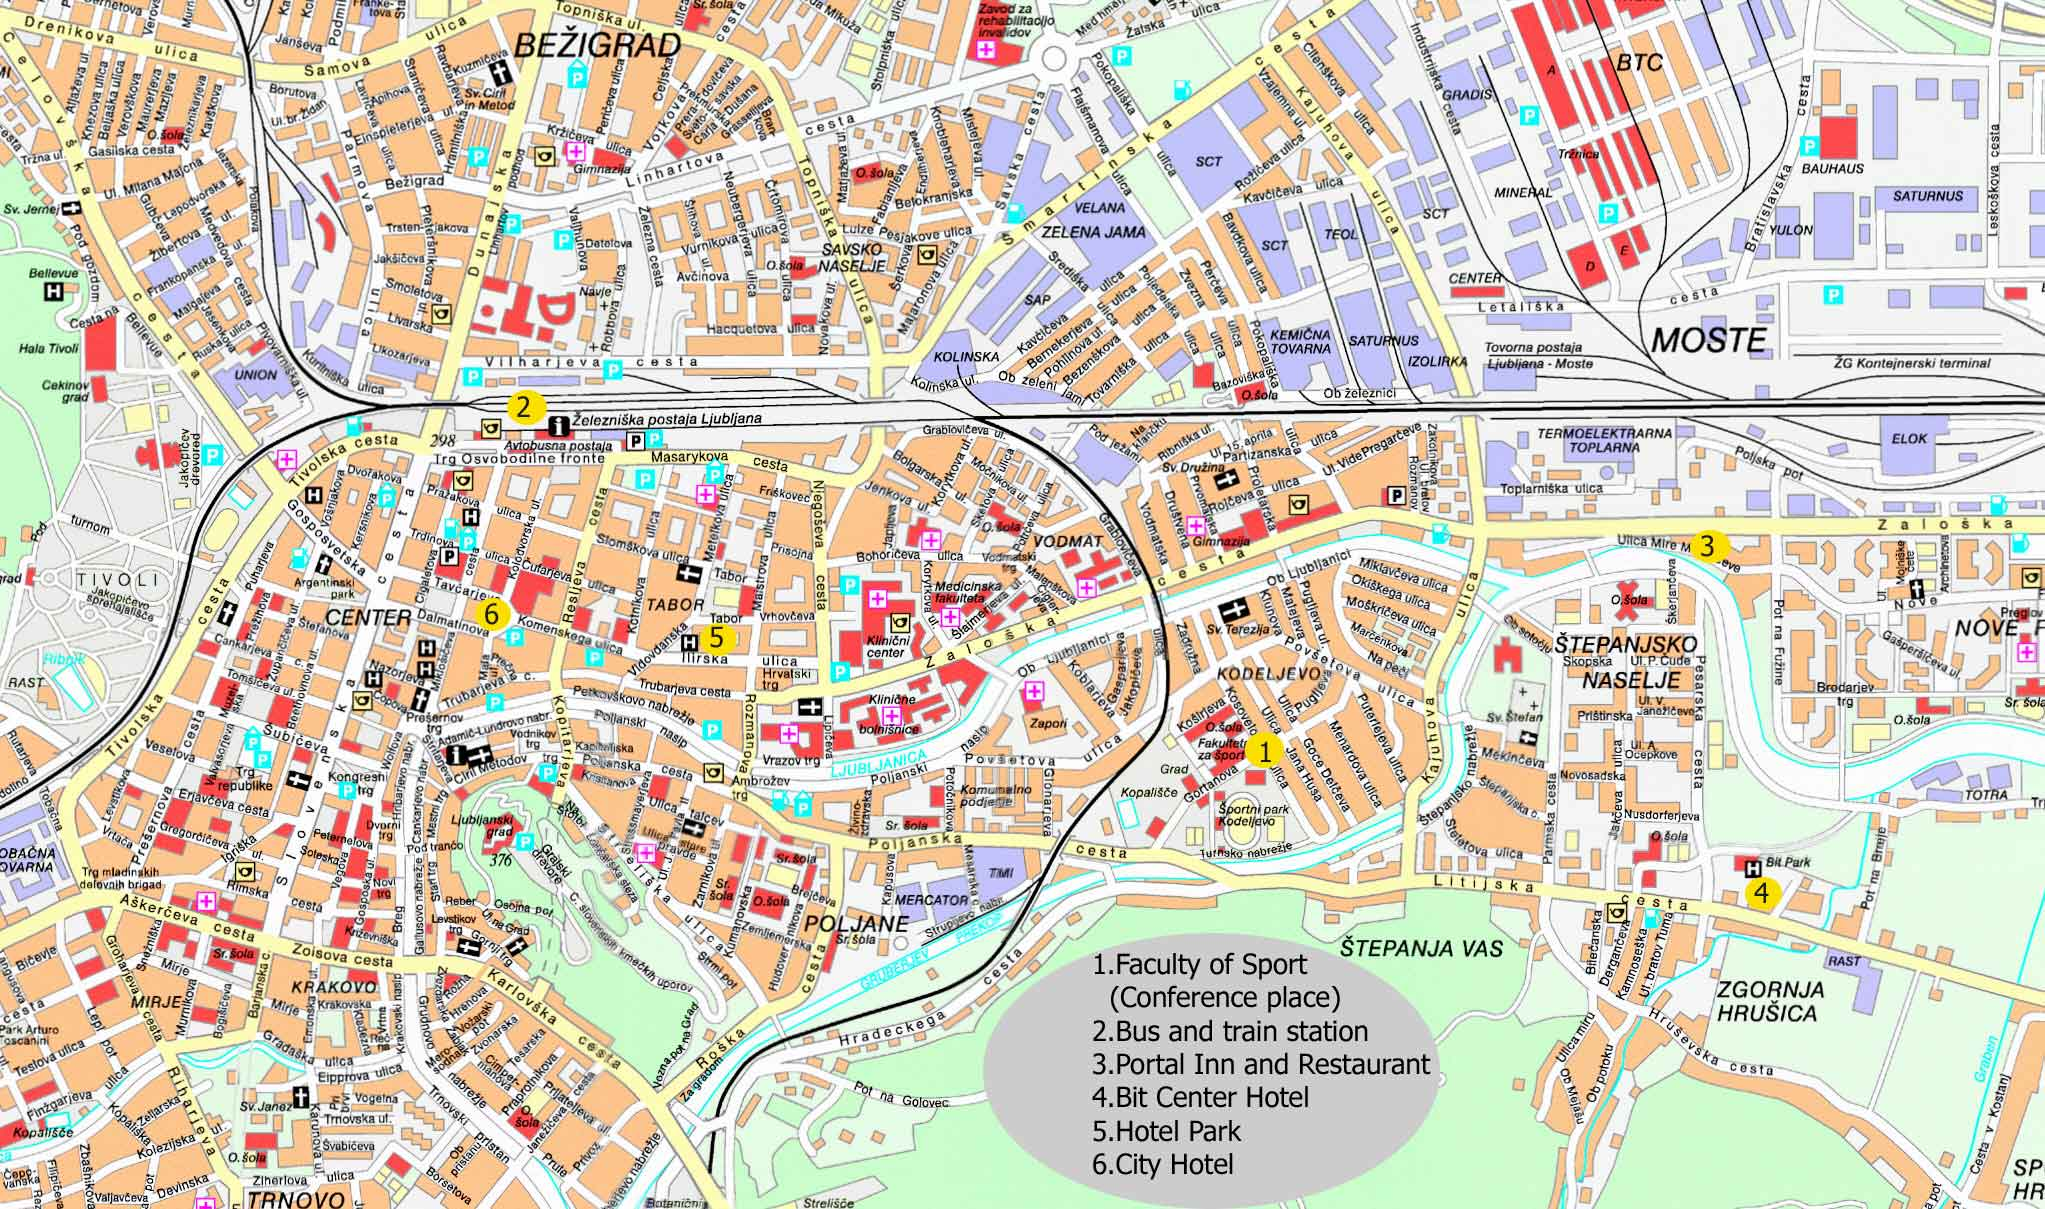 Large Ljubljana Maps for Free Download and Print HighResolution